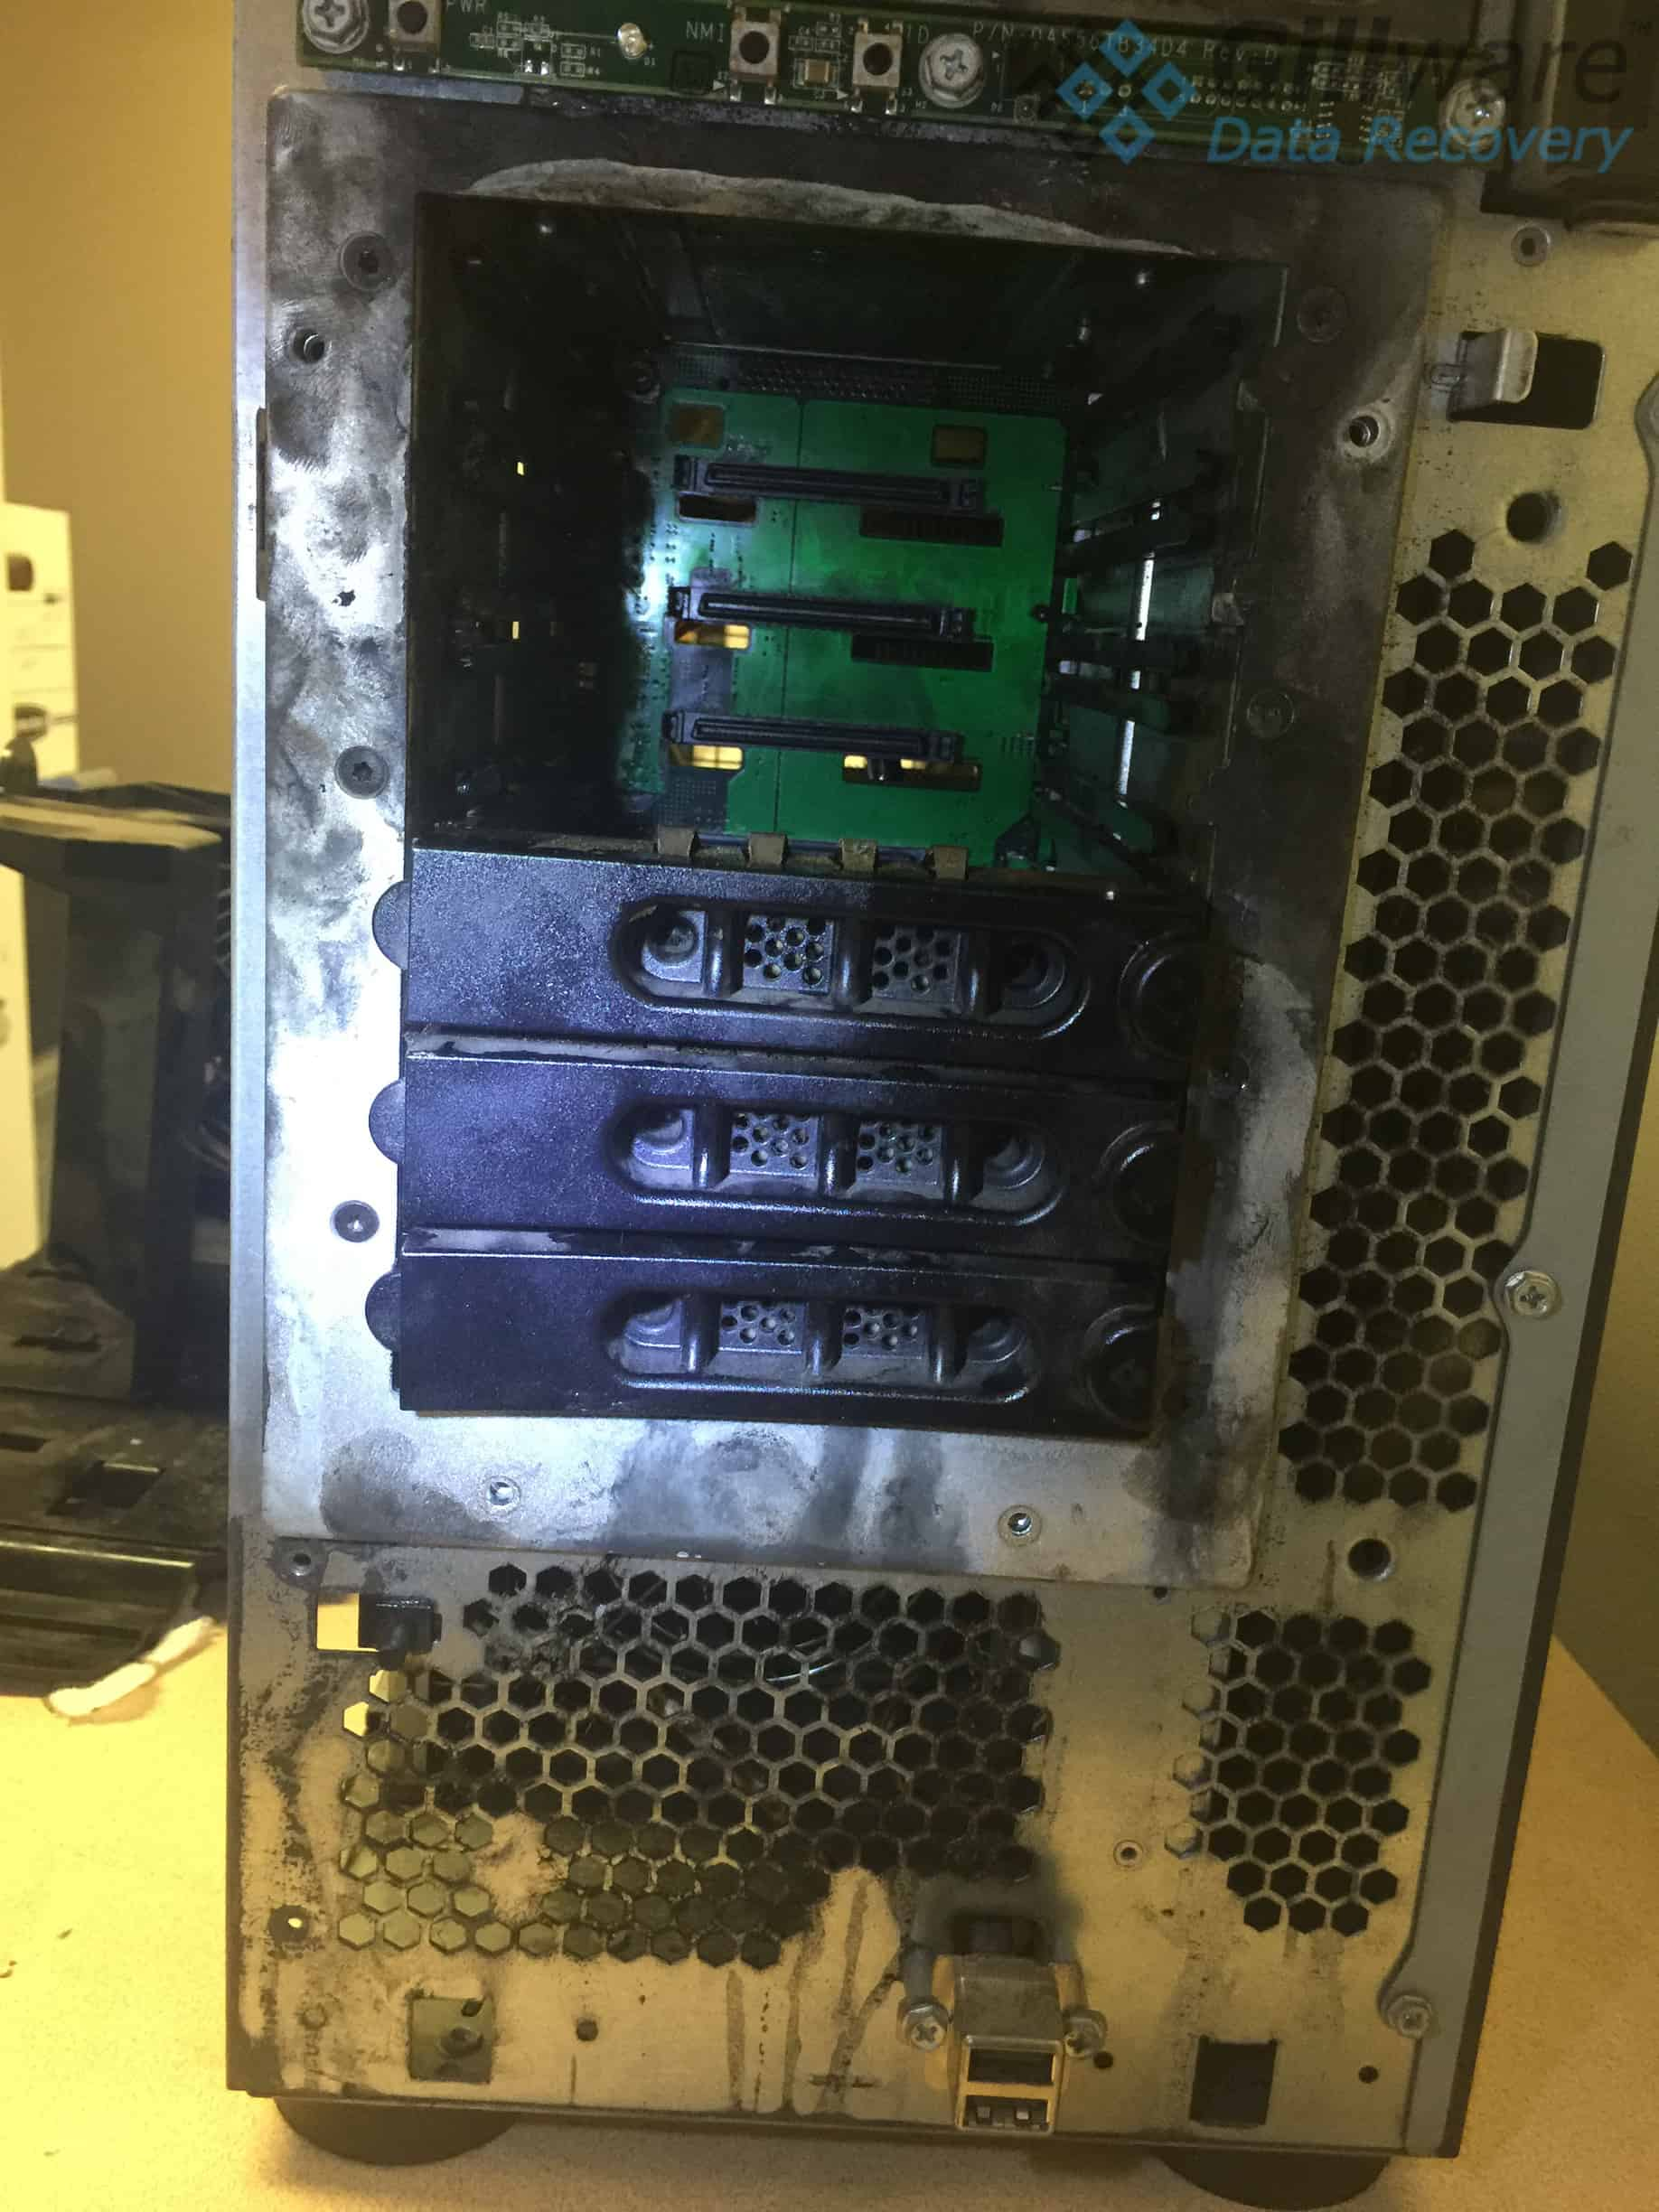 A server shortly after the incident, in need of RAID-5 server recovery